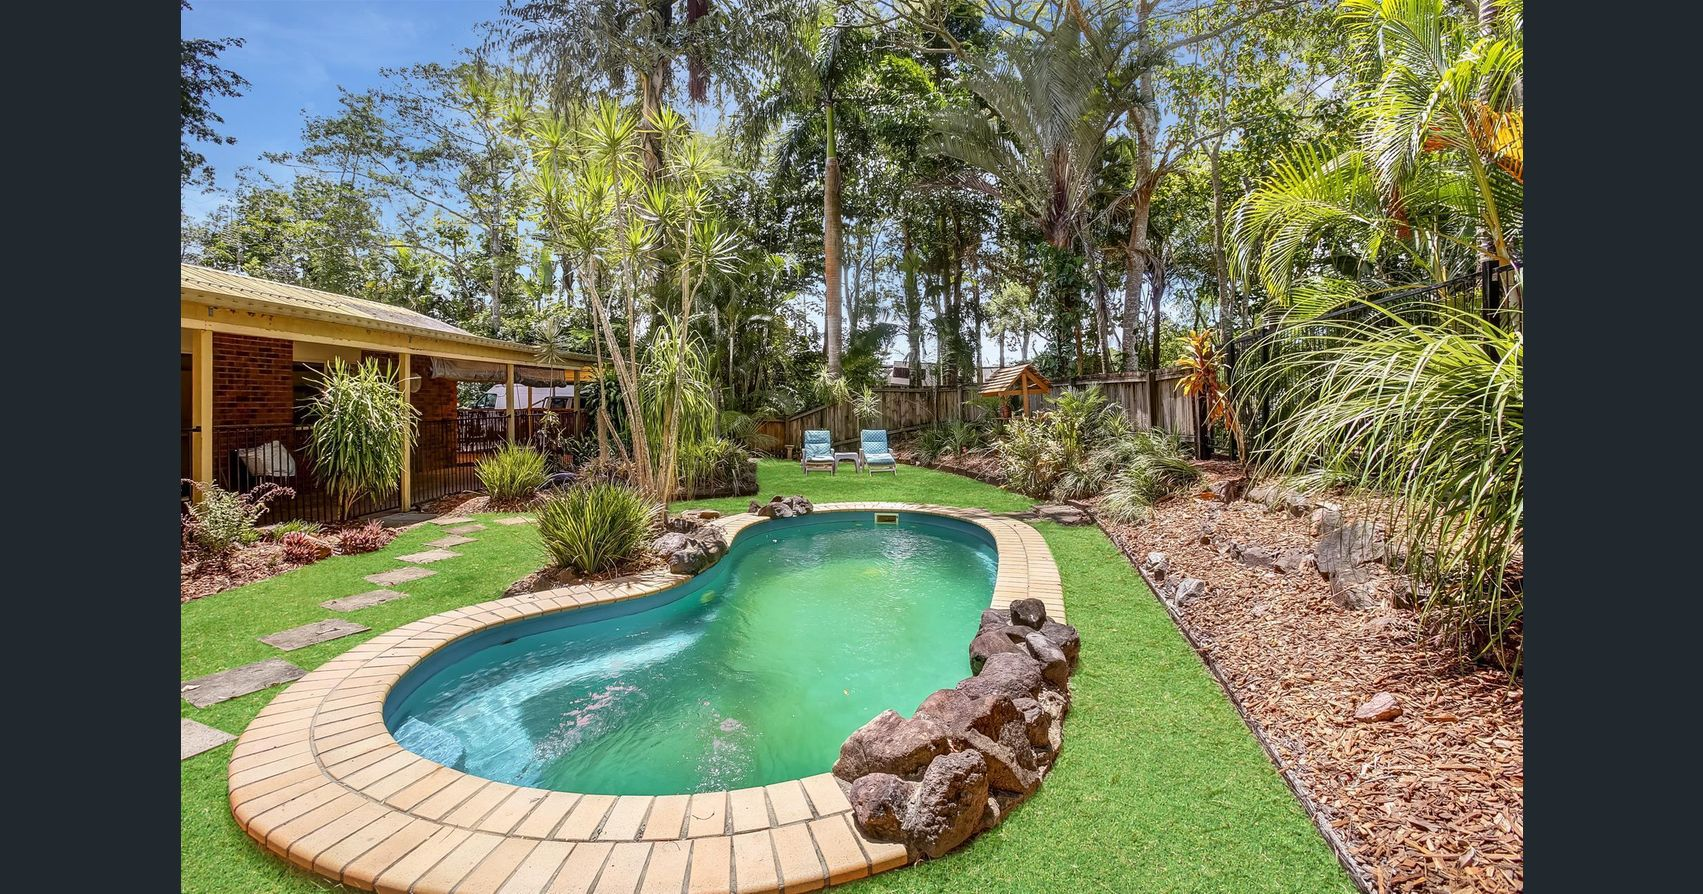 77 Ninderry Rd, Bridges, Qld 4561